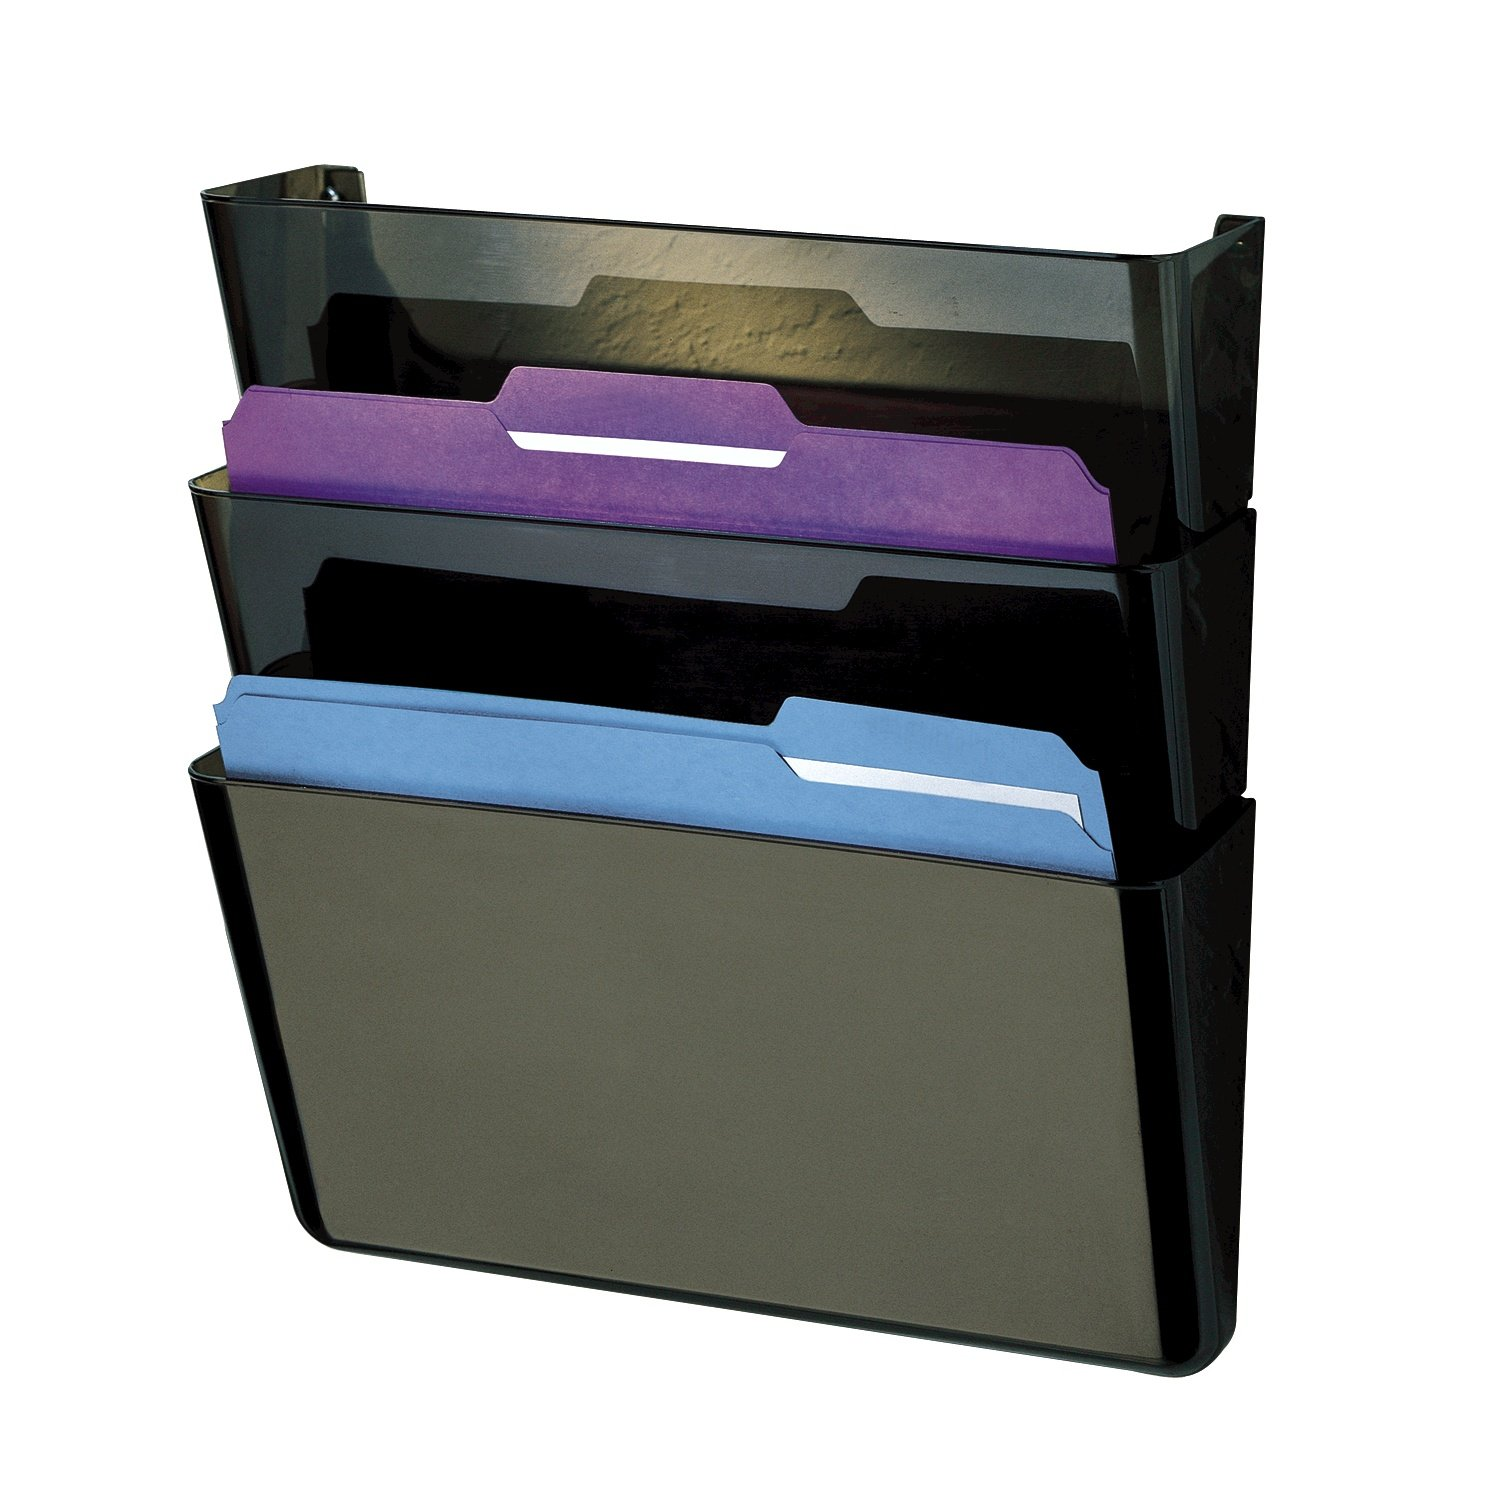 Beautiful Amazon.com : Rolodex Stak A File Three Pocket Wall File, Letter, Smoke,  3/Pack (47021) : Hanging Wall Files : Office Products